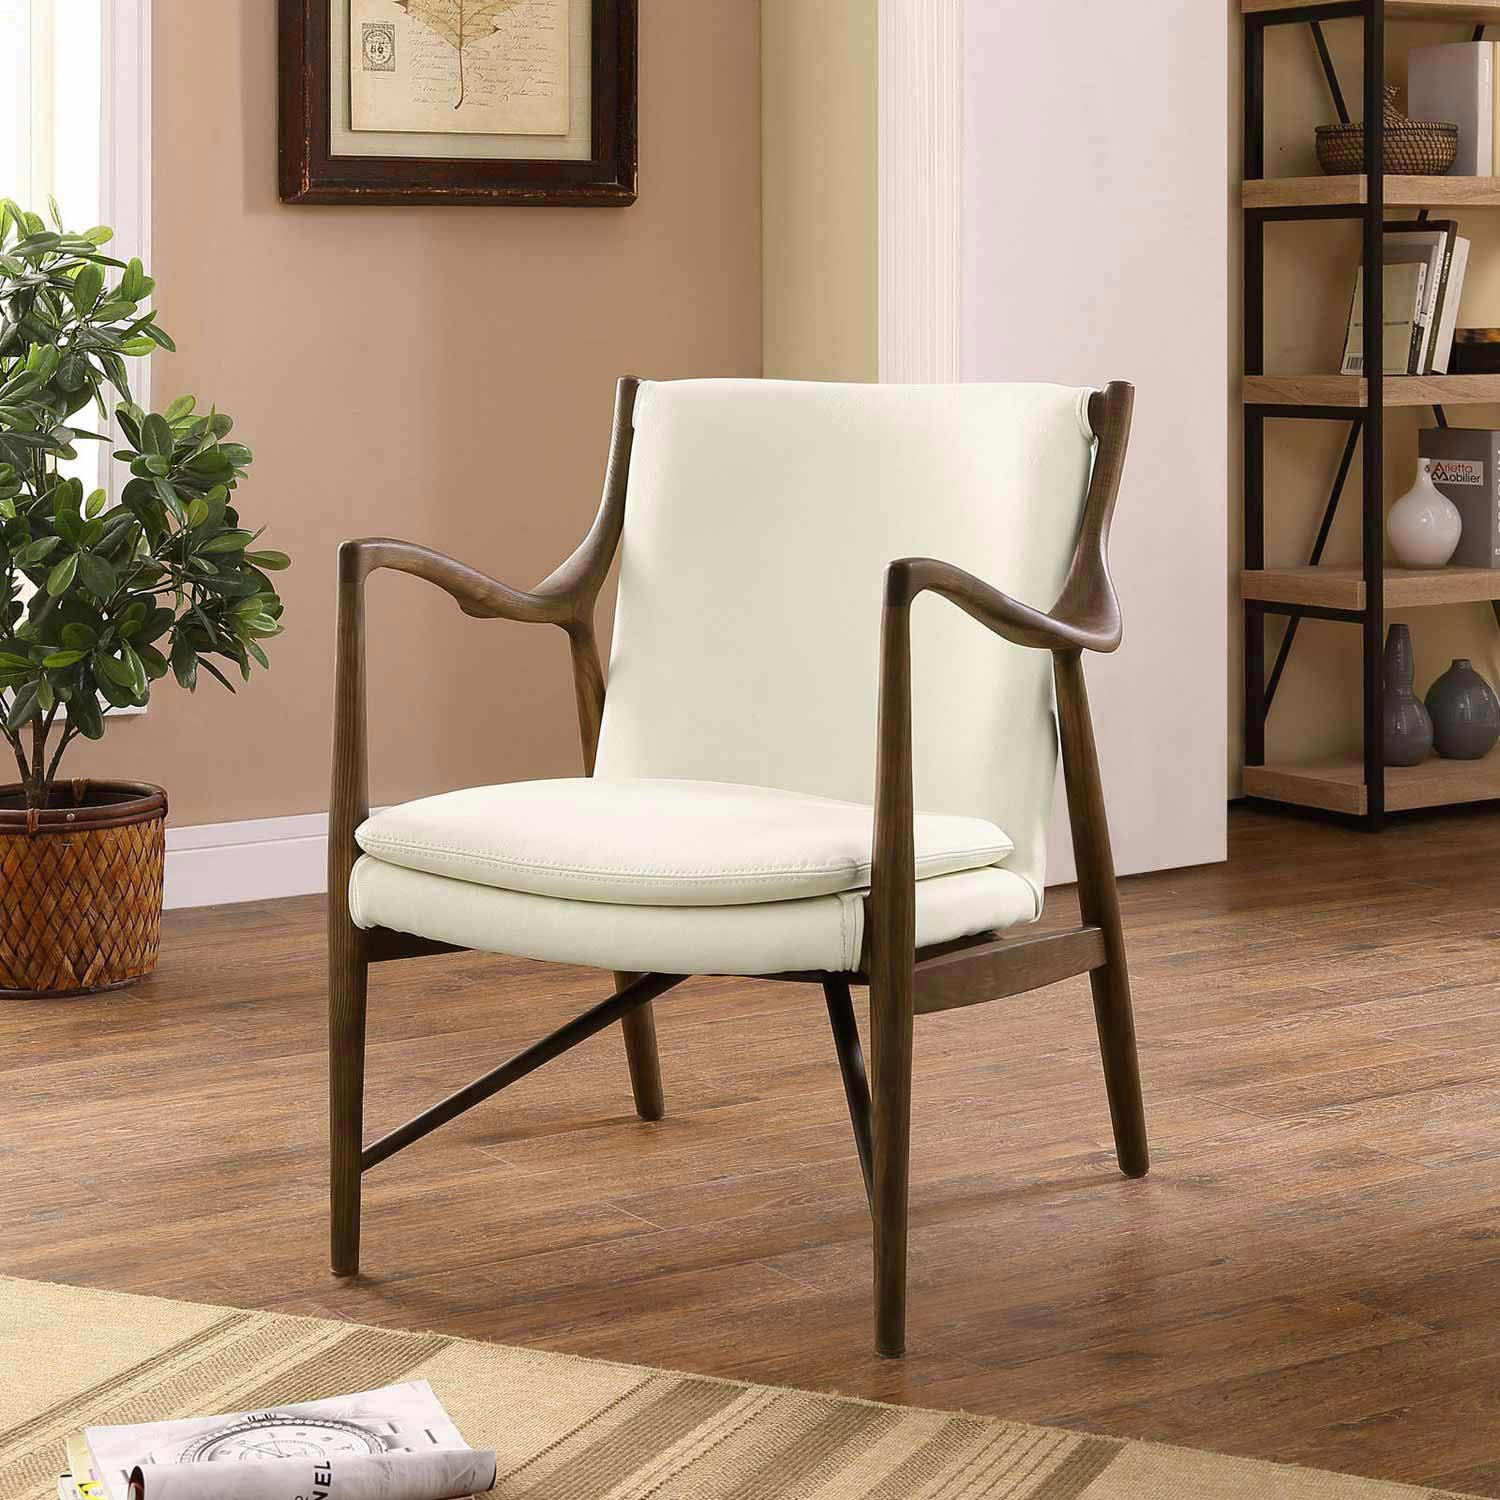 Modway Makeshift Leather Lounge Chair - Walnut Cream